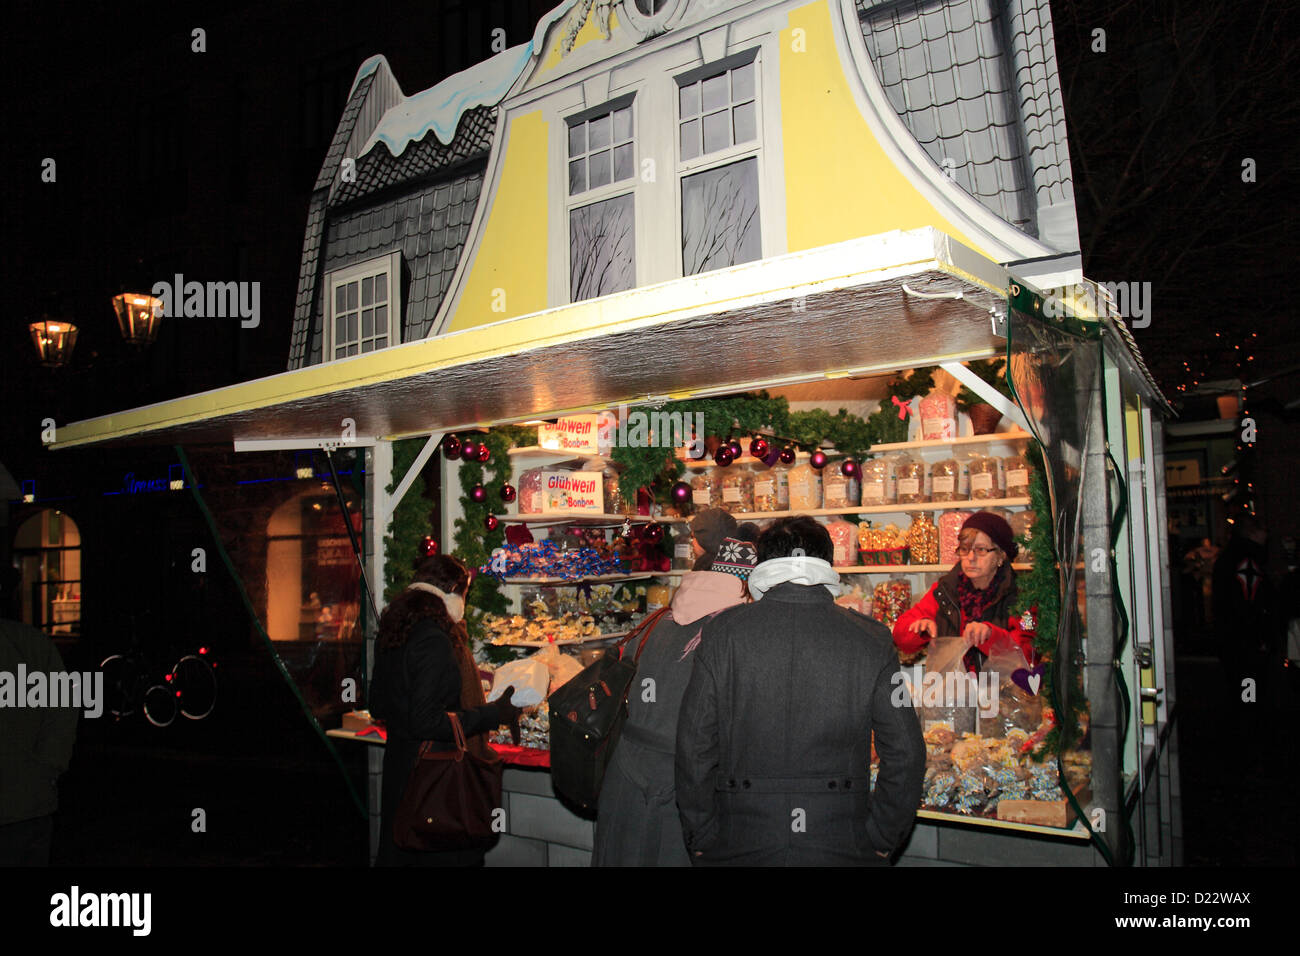 Goods And Stalls Christmas Markets Altstadt Old Town Stock Photo